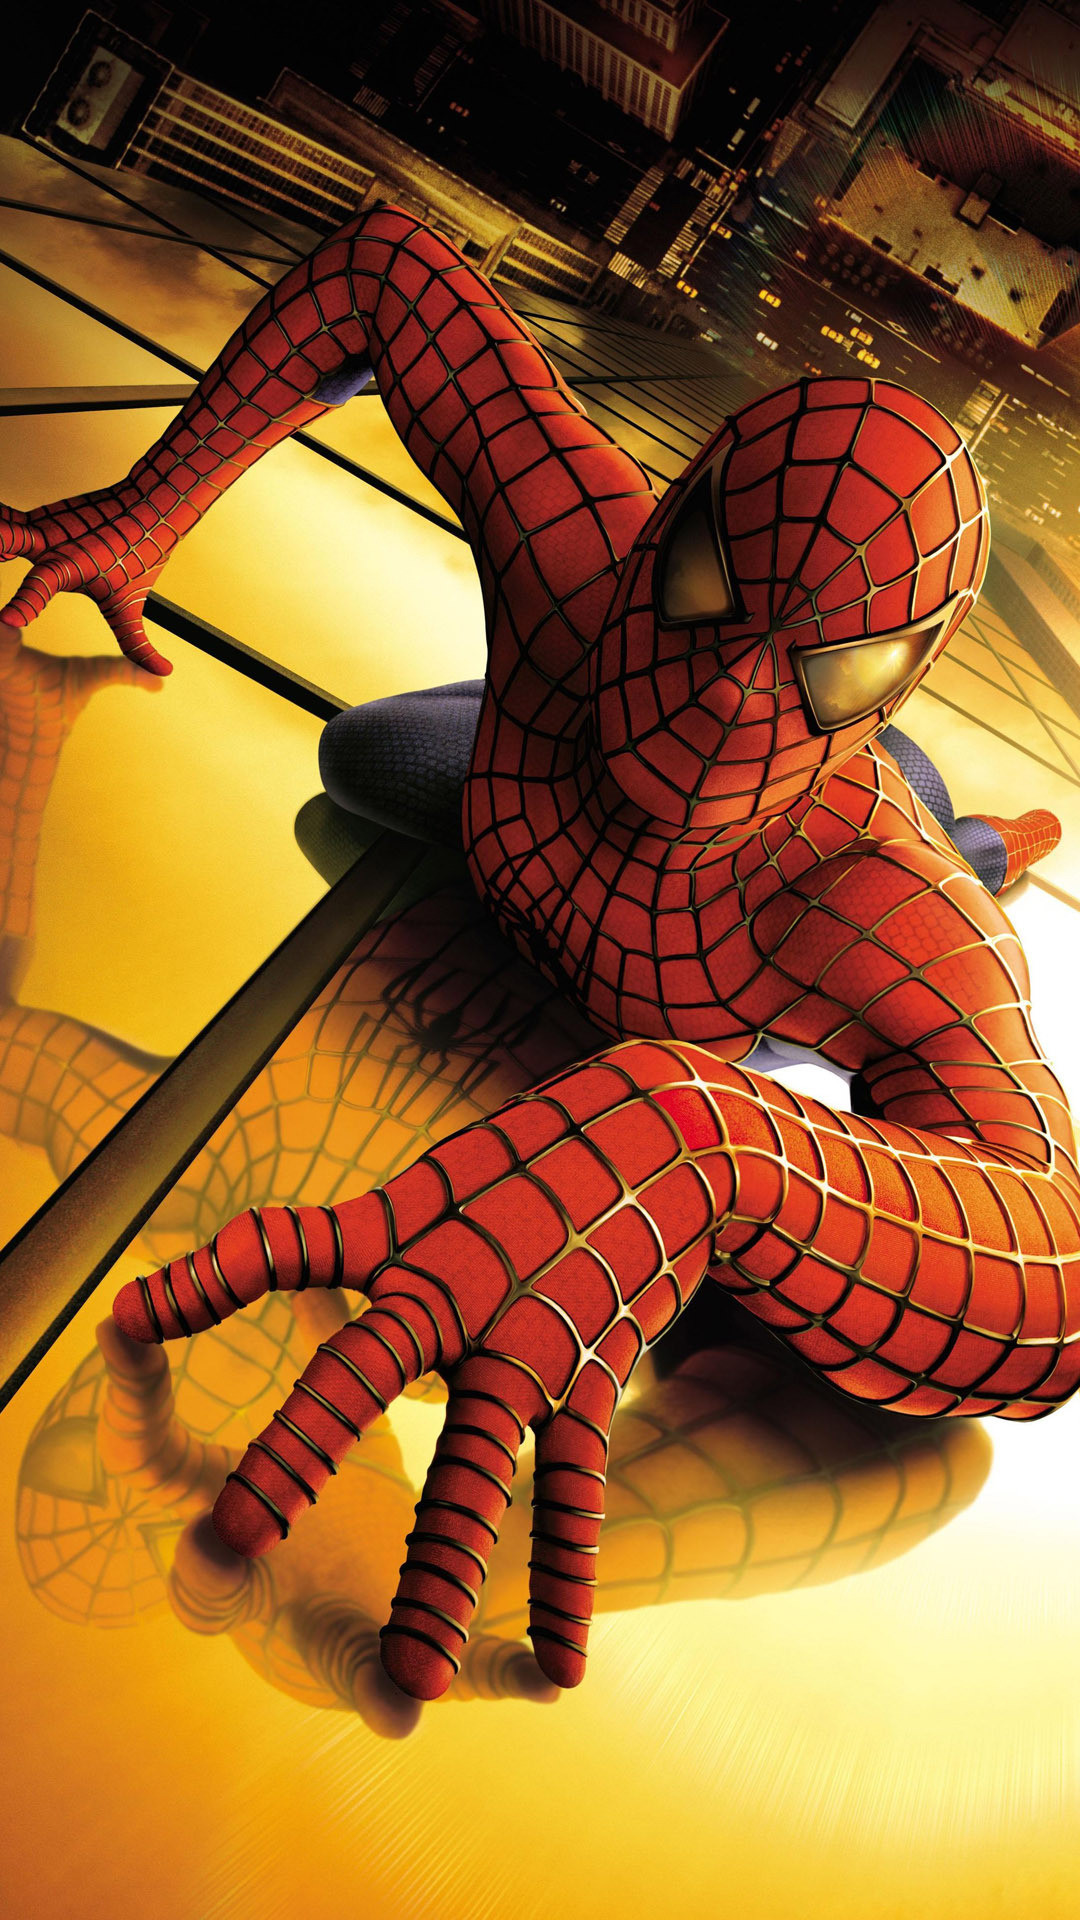 Battle Spiderman. Tap to see more The Spiderman iPhone wallpapers,  backgrounds, fondos.